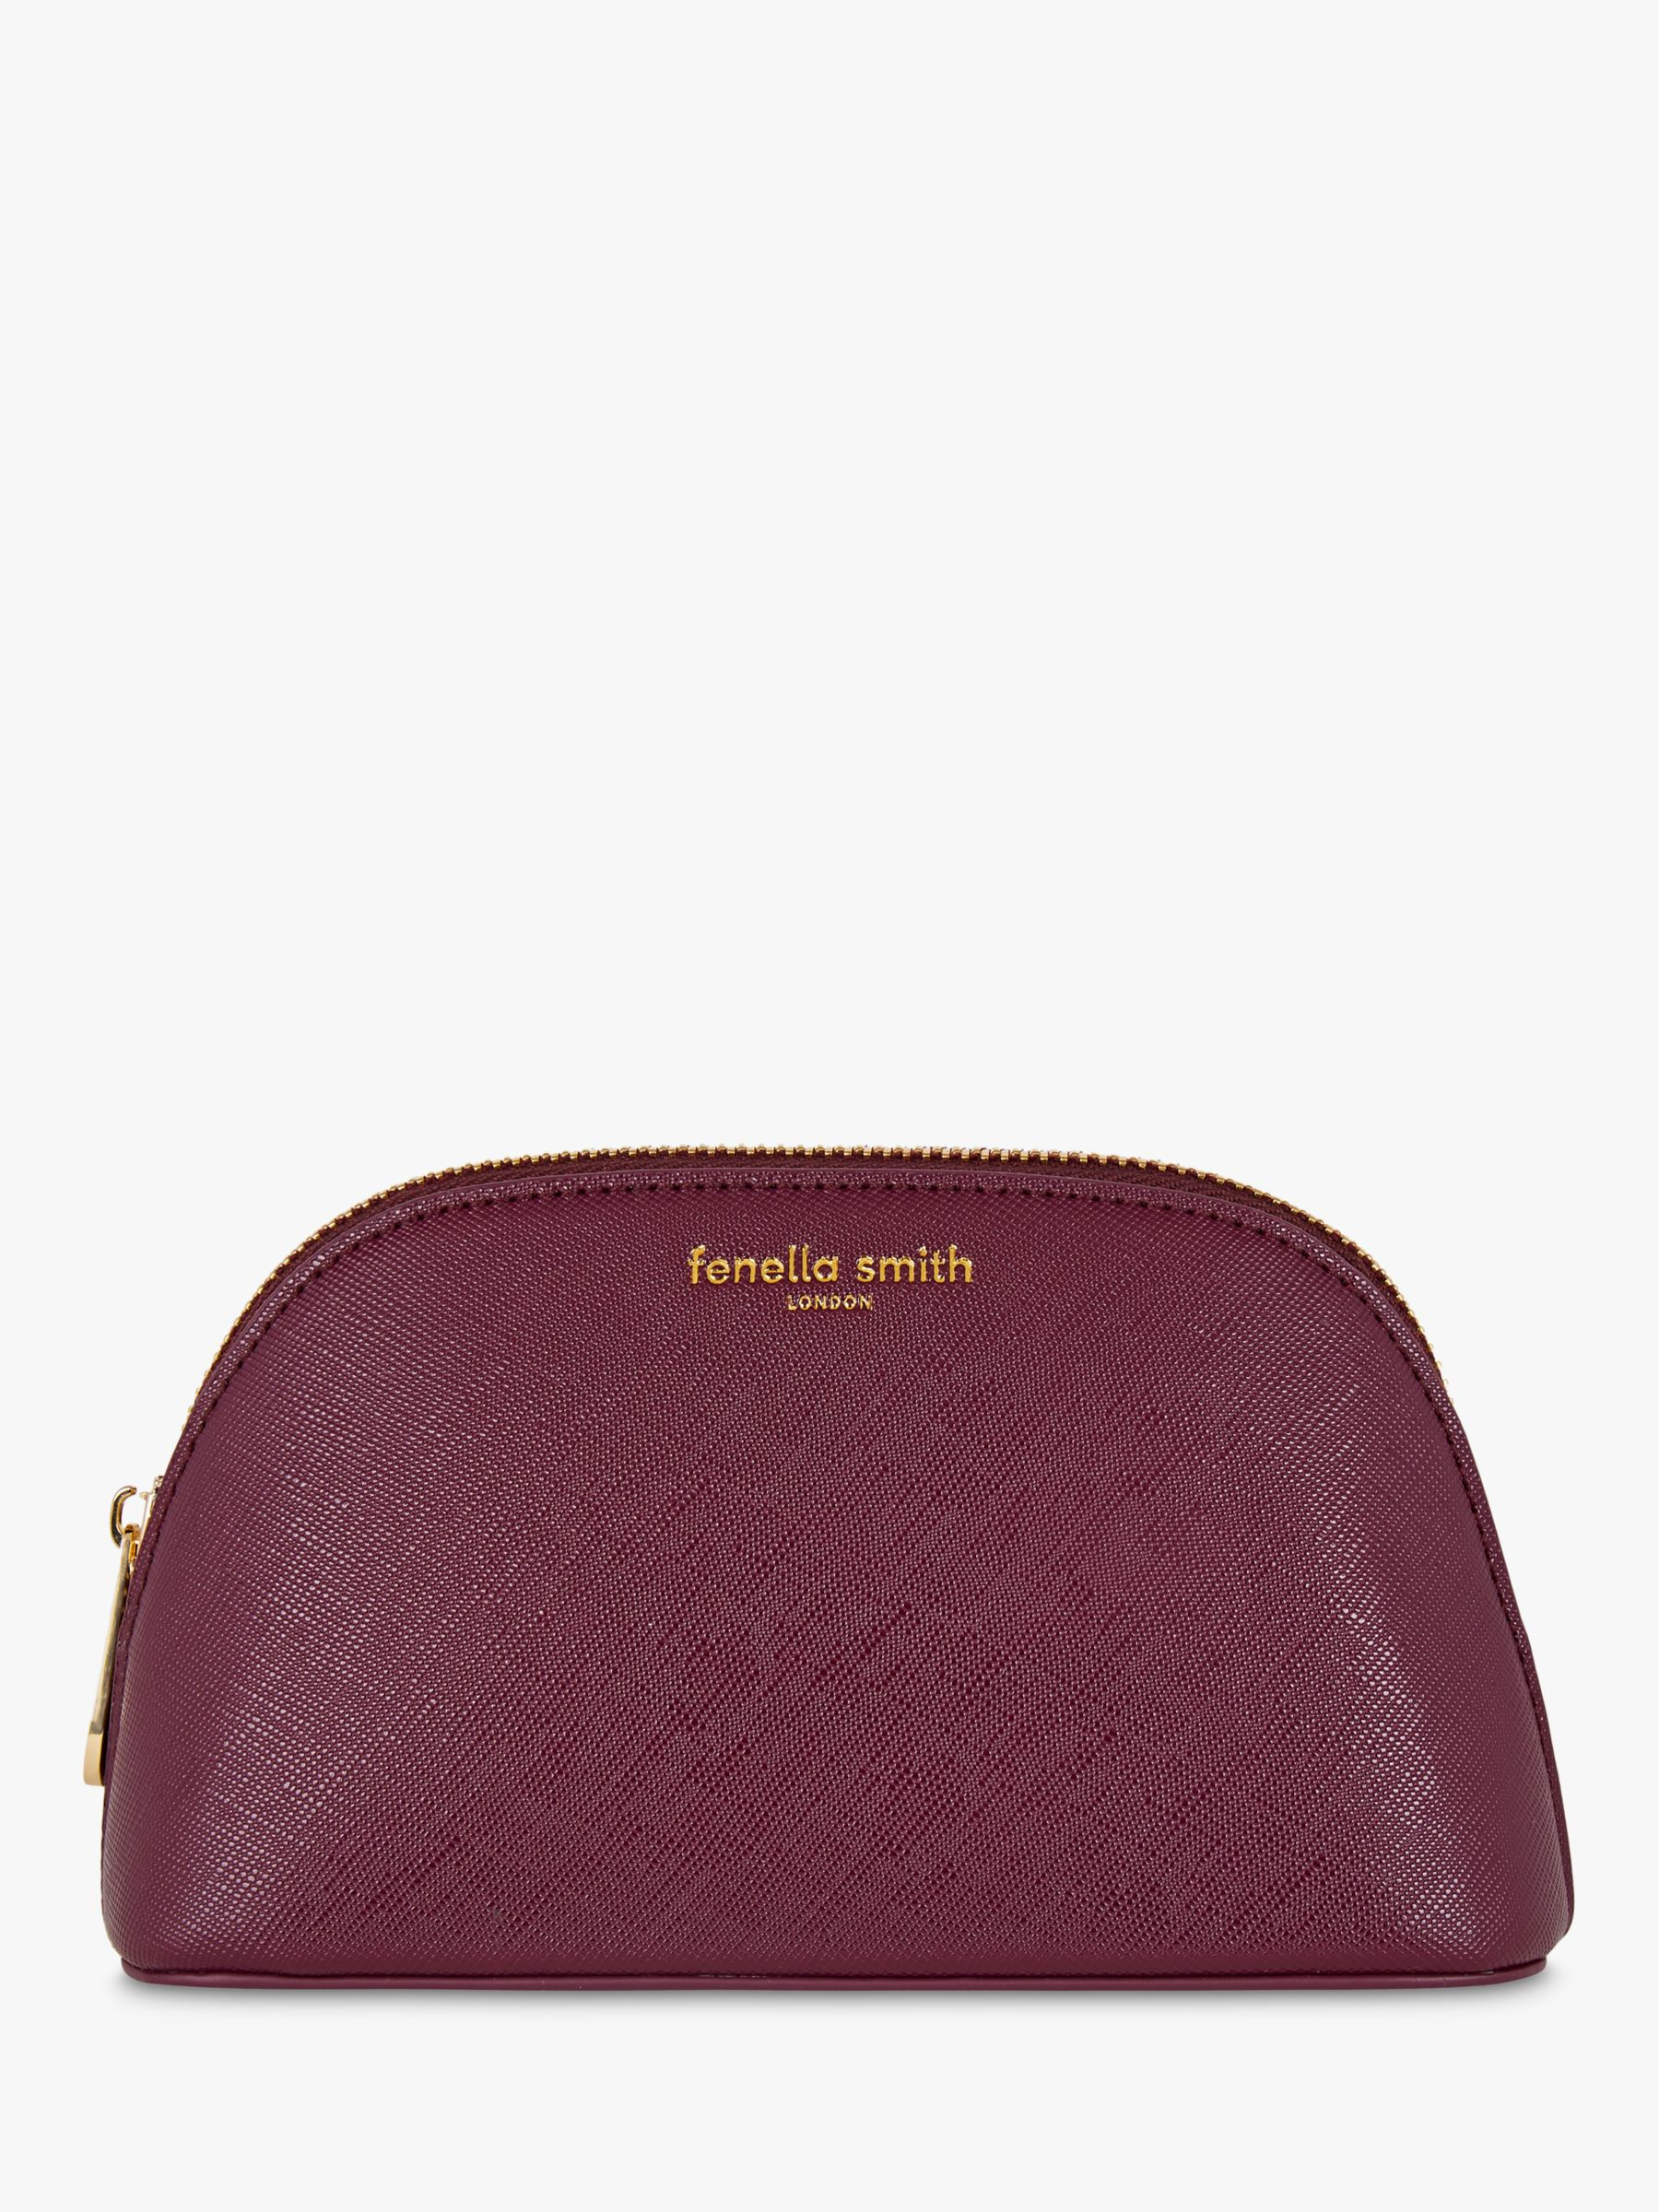 Fenella Smith Fenella Smith Aubergine & Leaf Makeup Bag